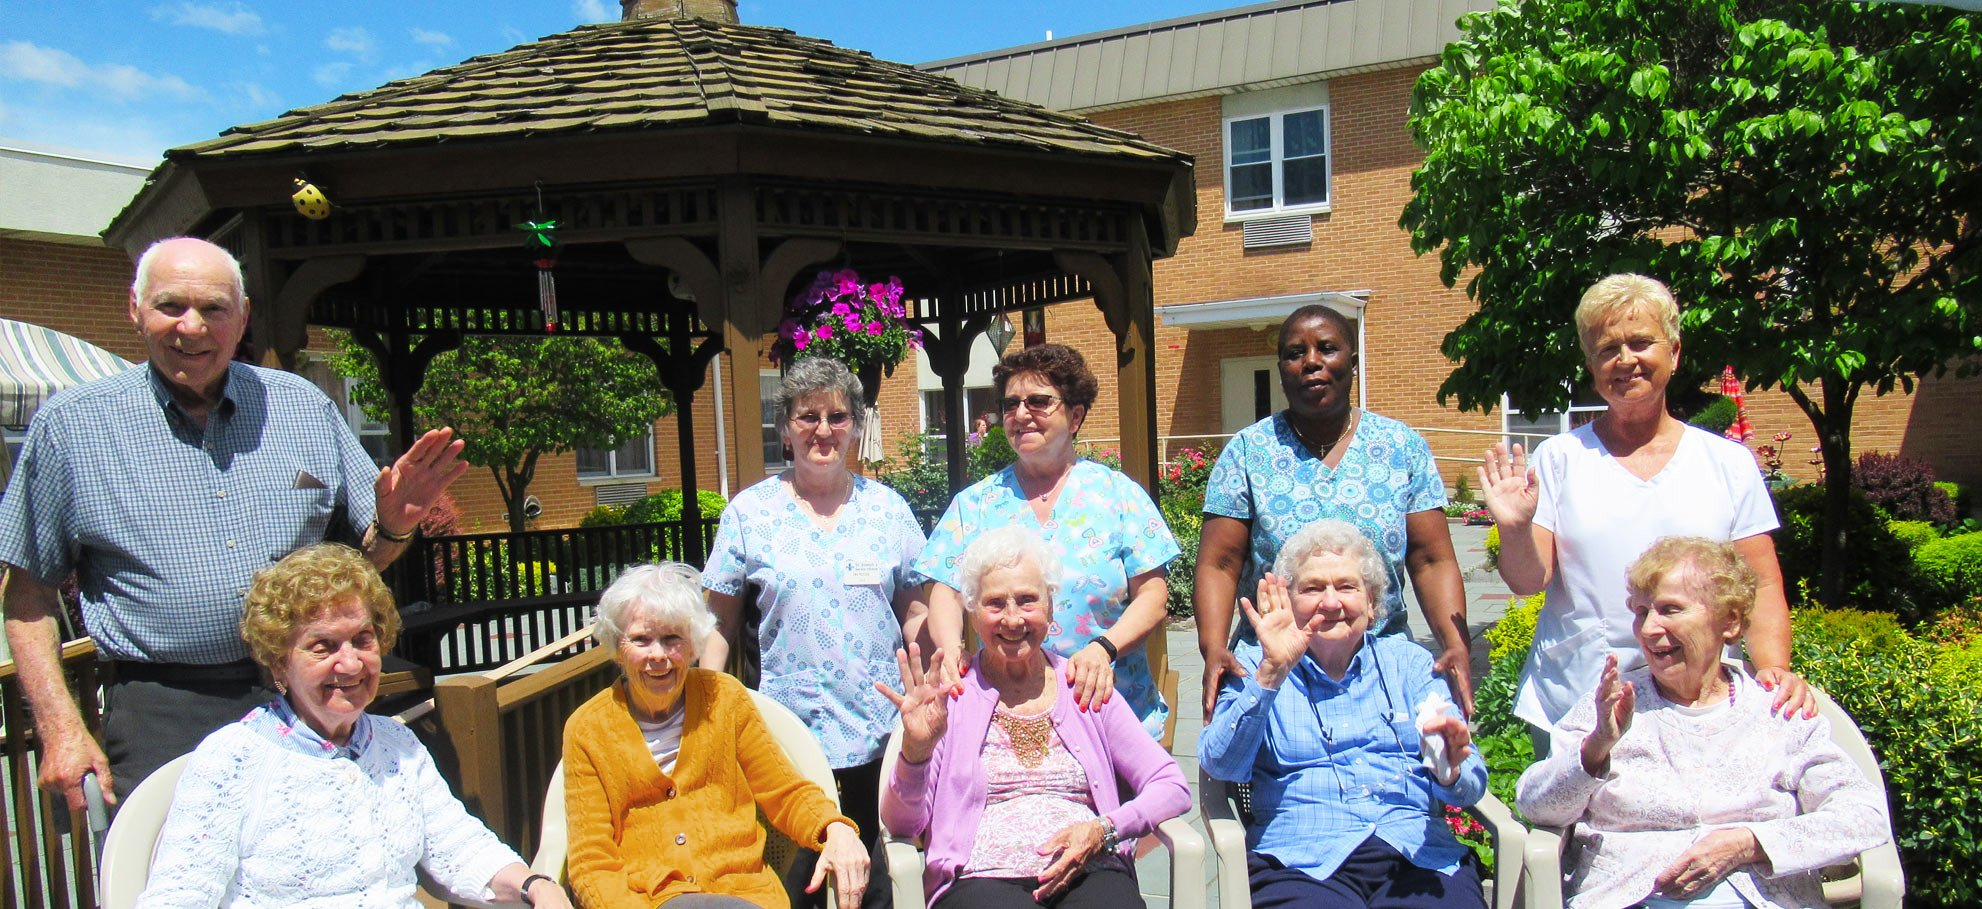 Residents of the St. Joseph's Senior House